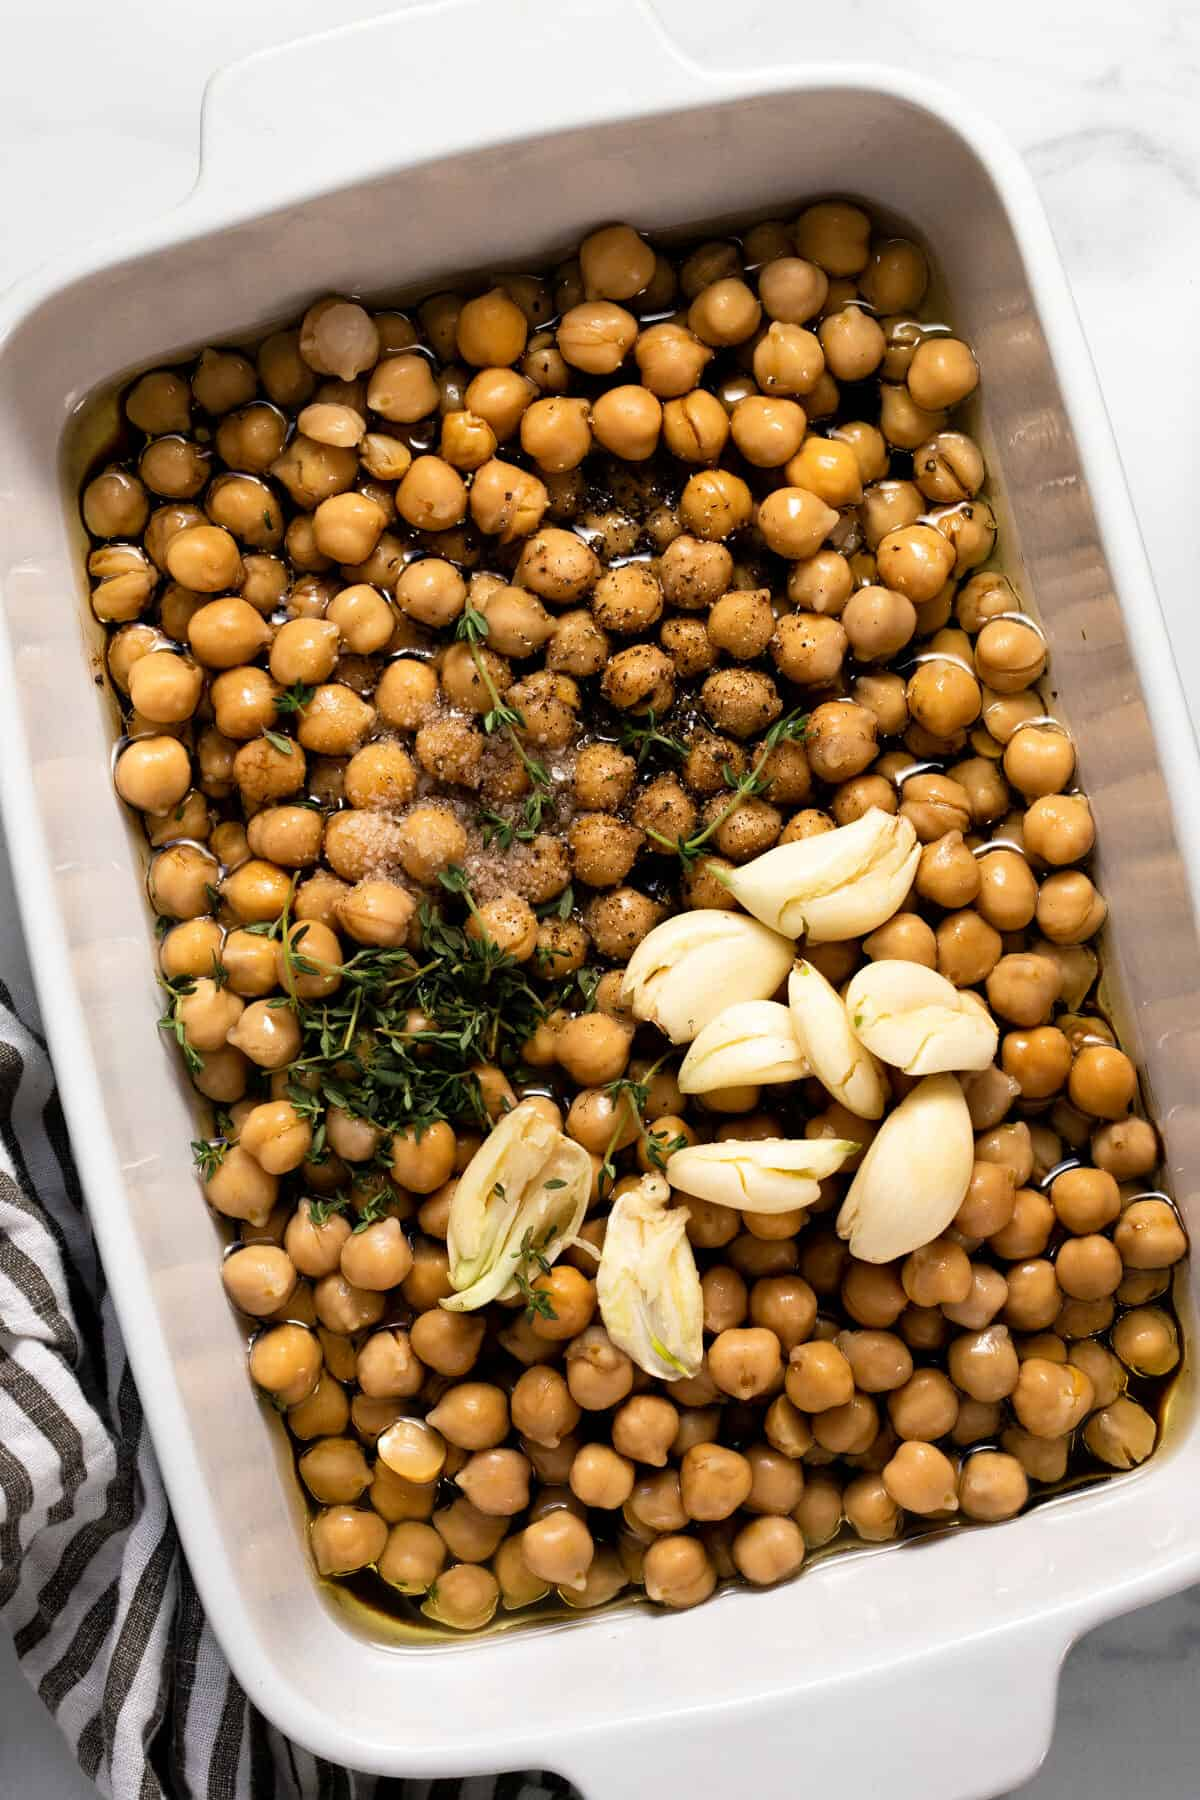 Ingredients to make braised chickpeas in a large white baking dish